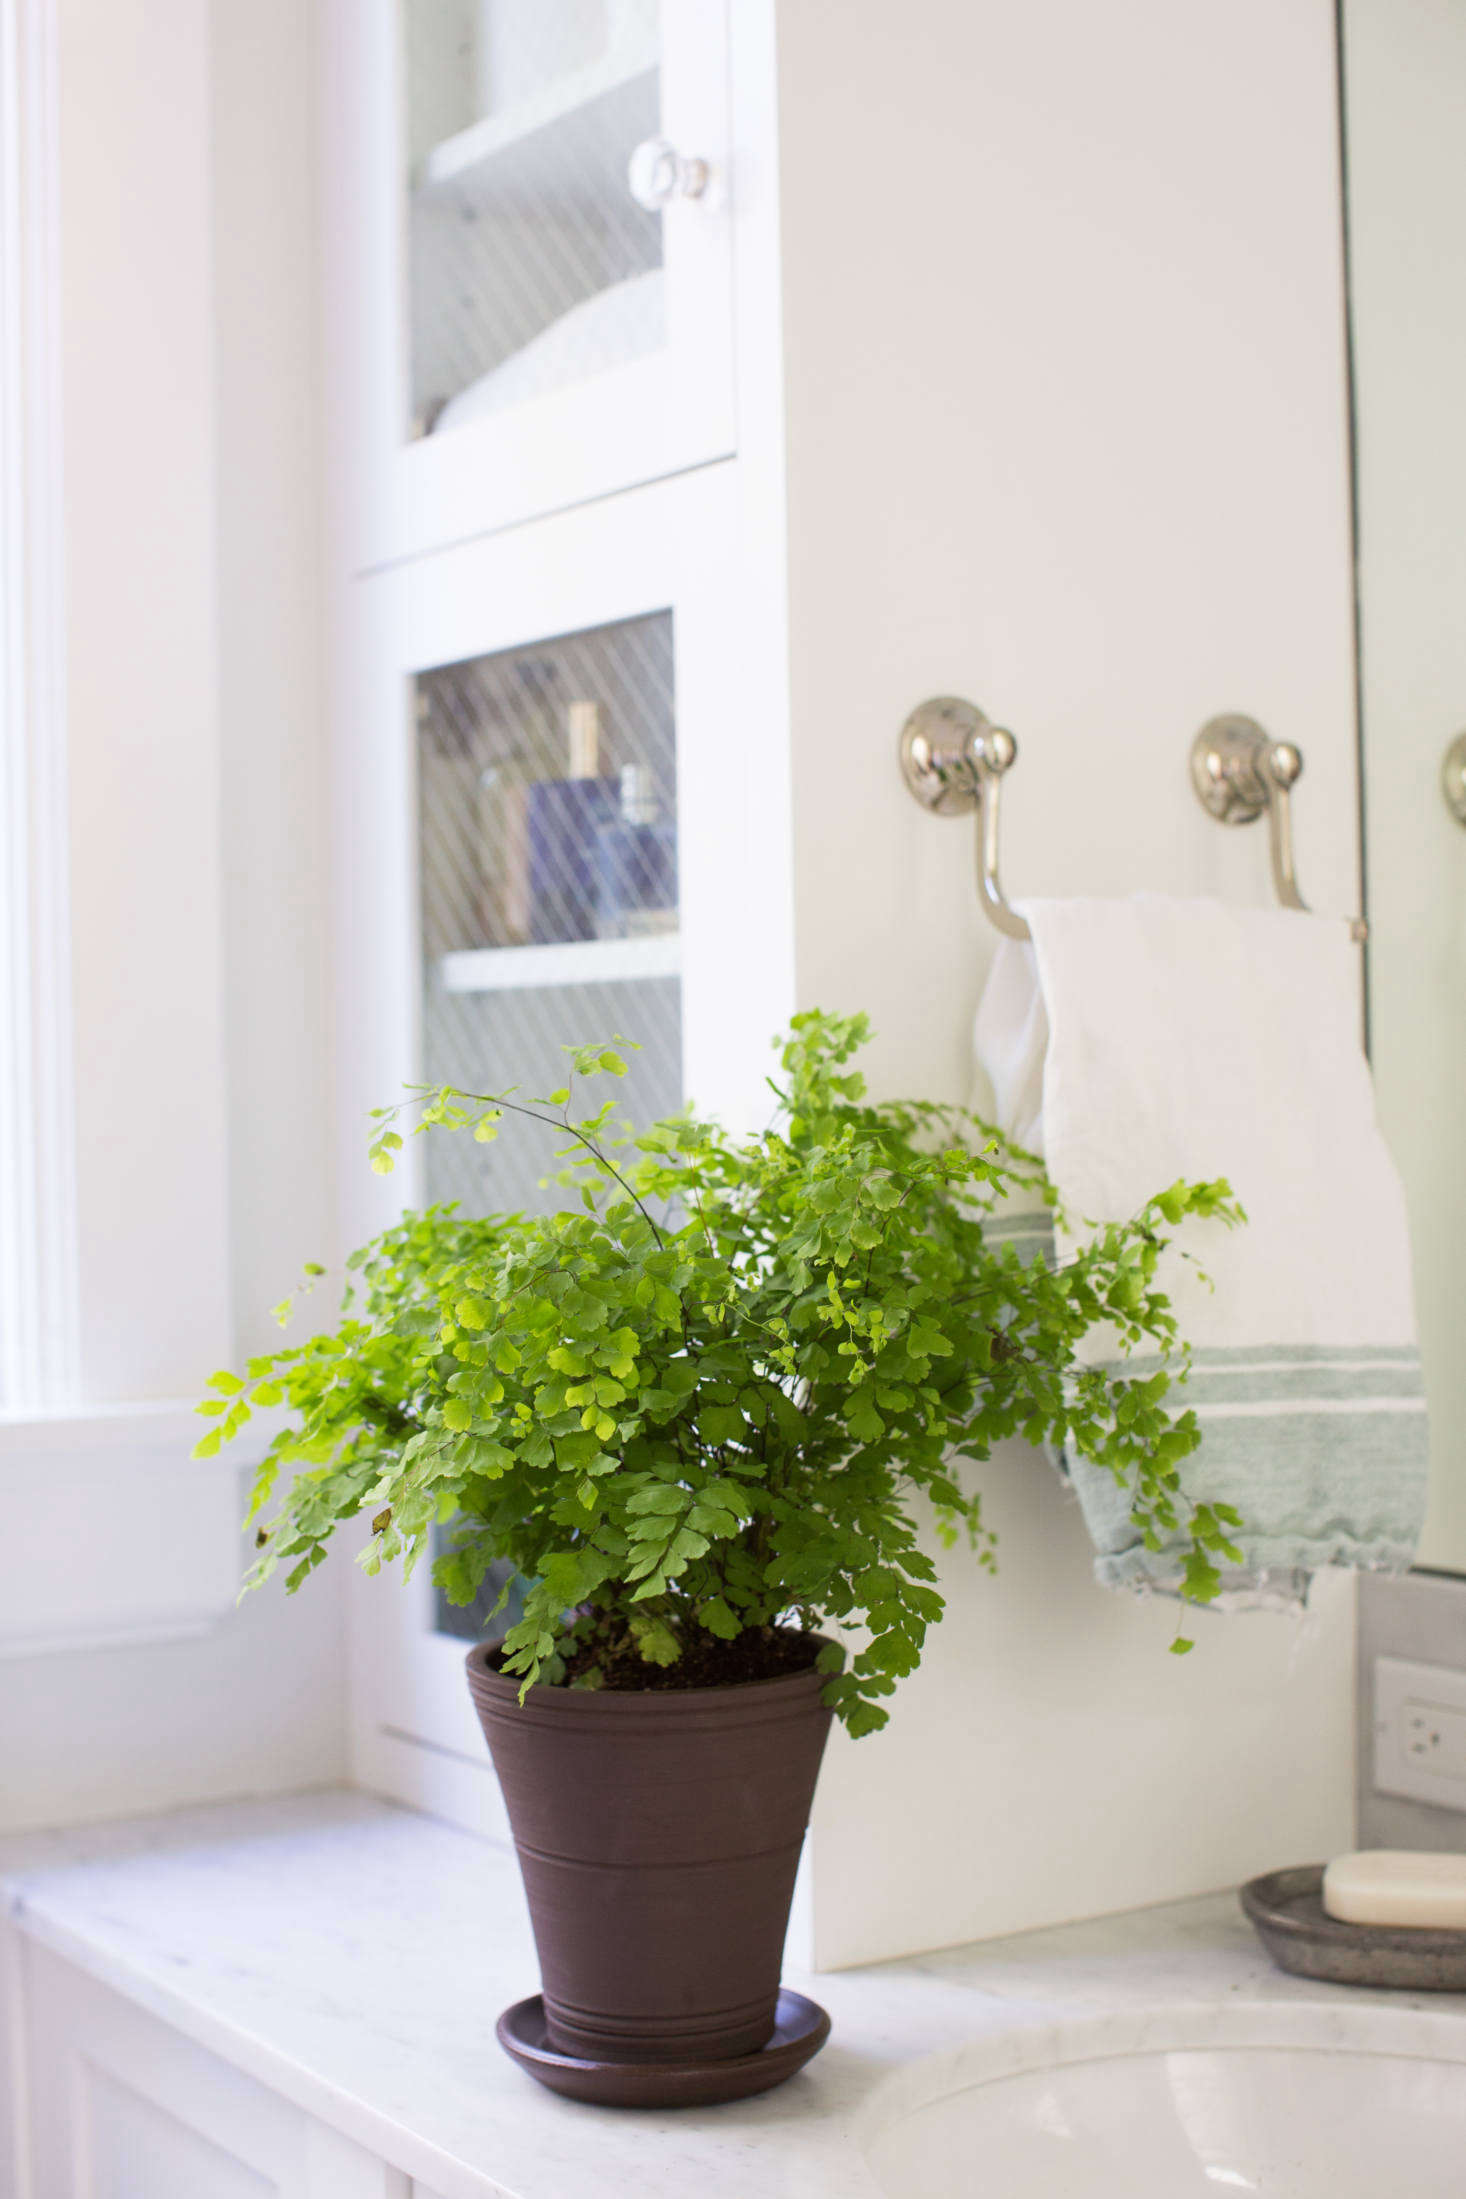 If you dare grow a maidenhair fern (Adiantum raddianum), a humid bathroom makes a nice home. In theory.